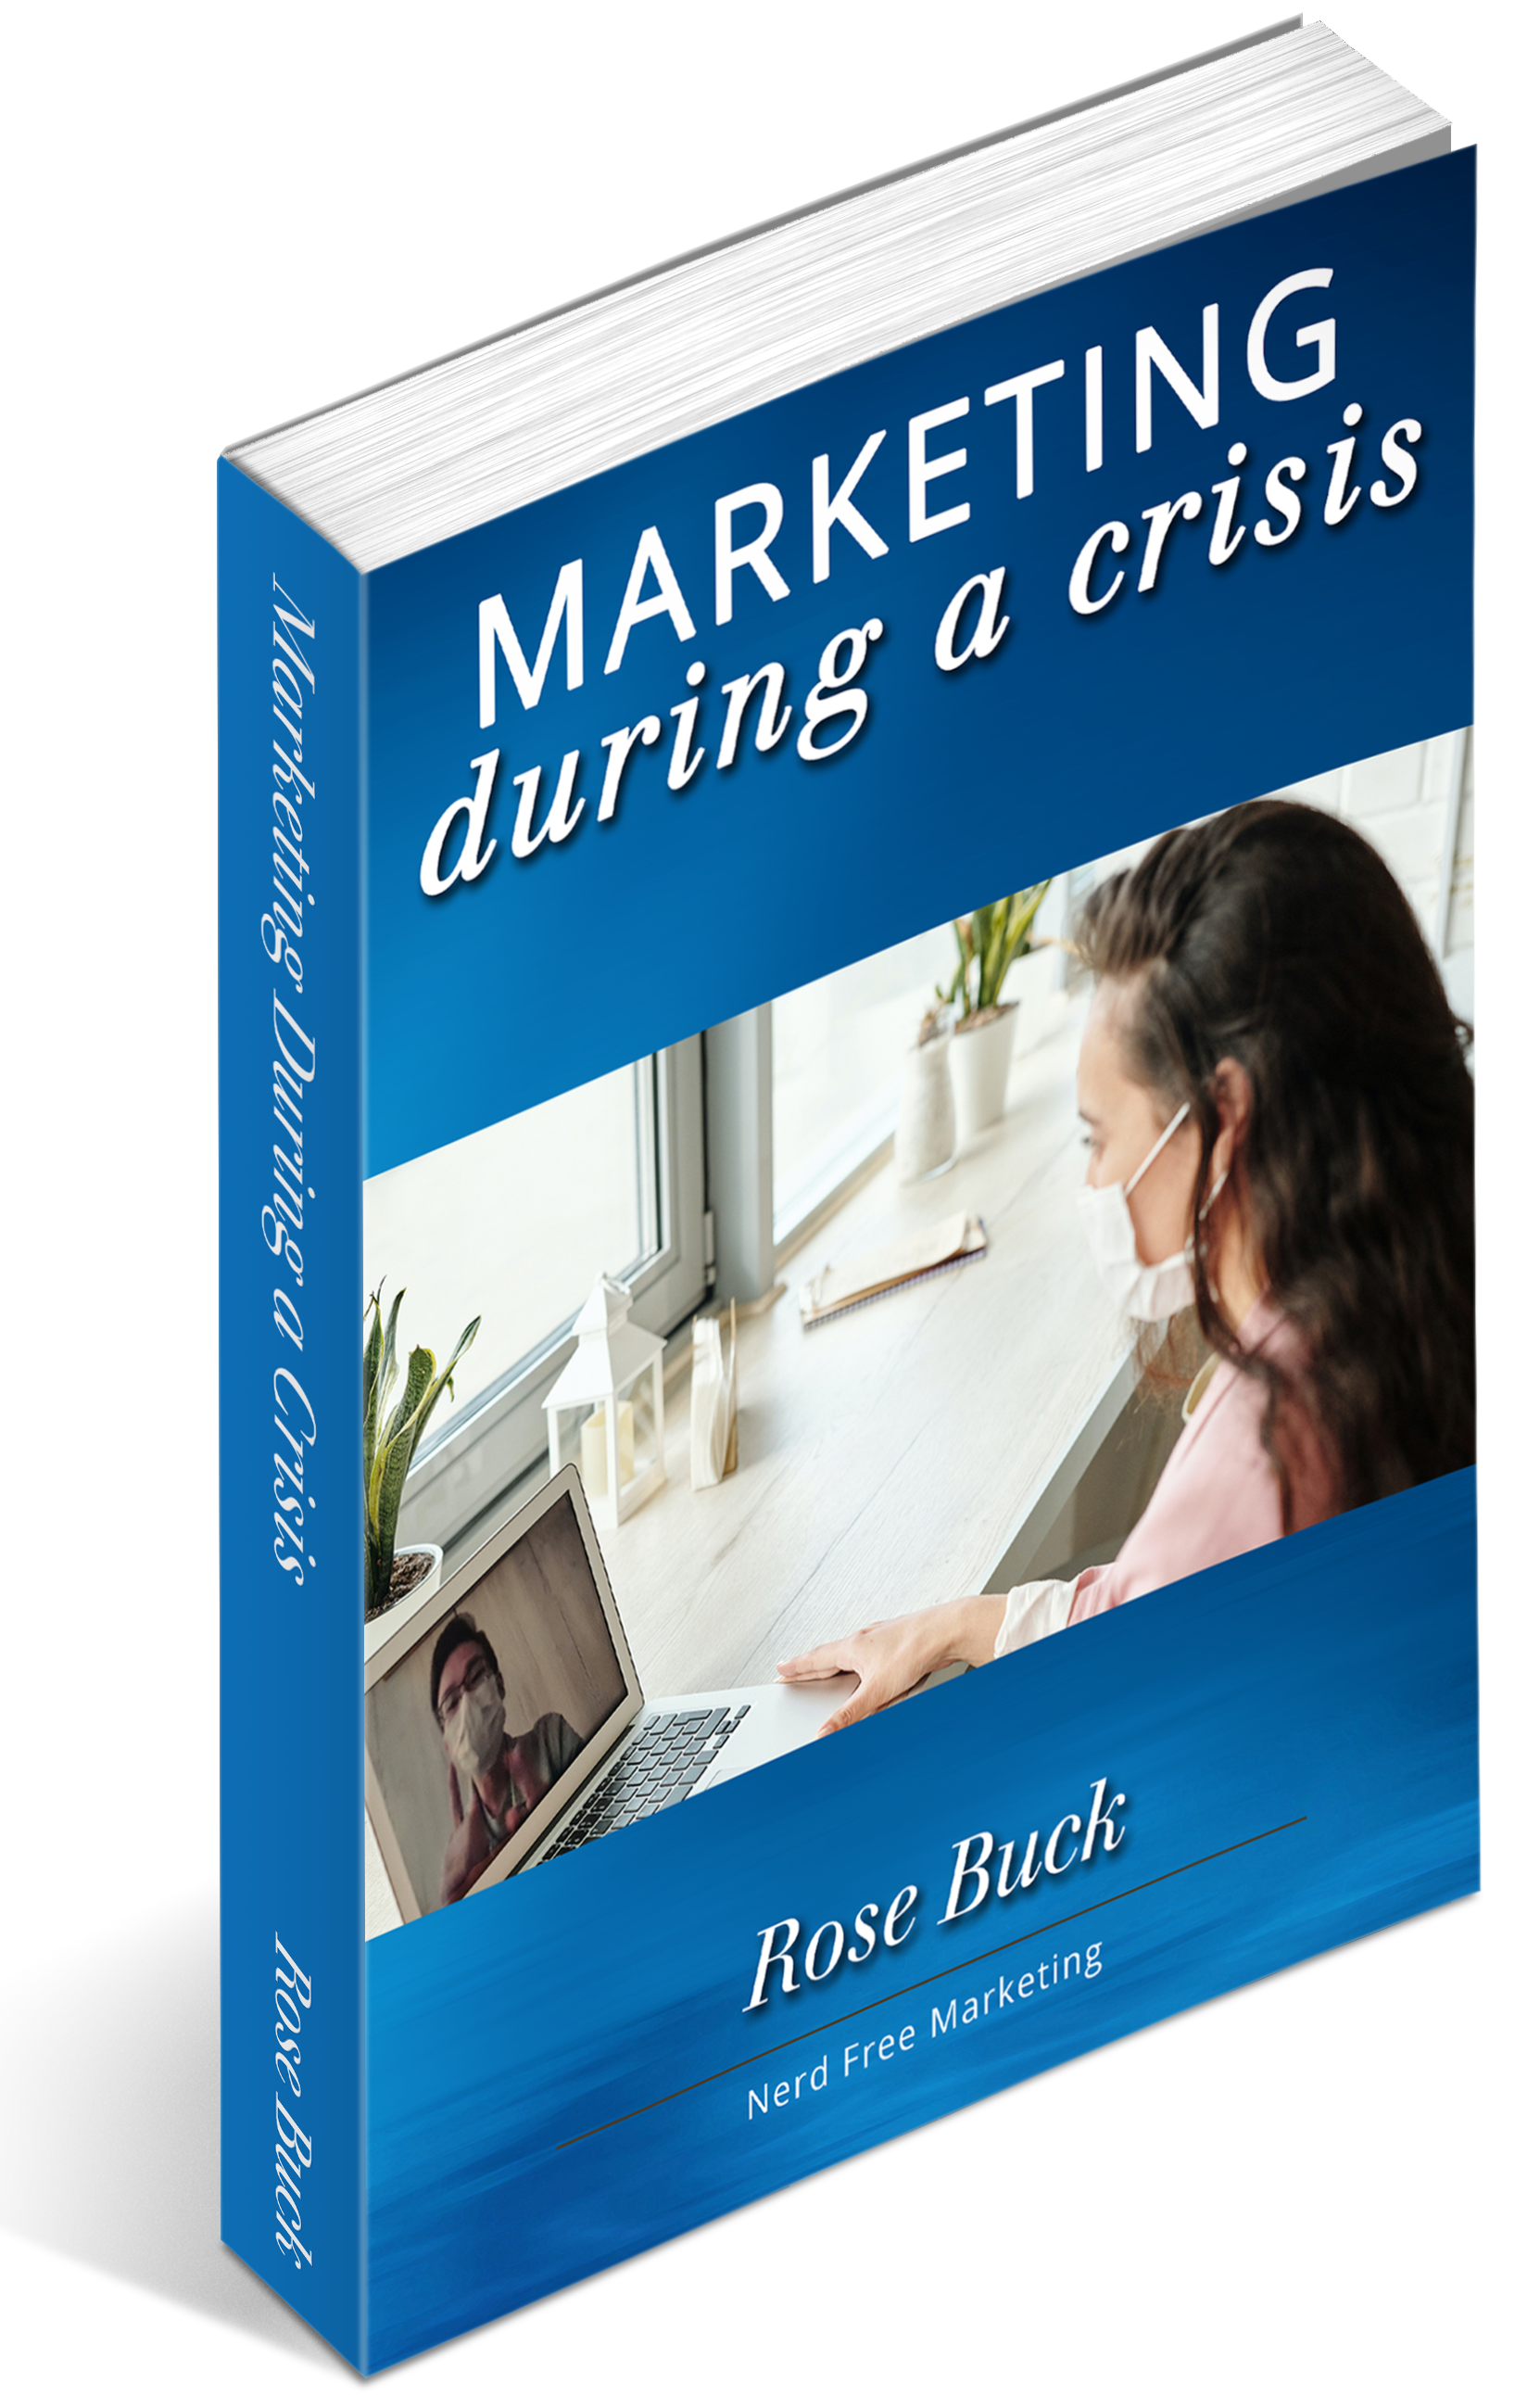 marketing during crisis cover